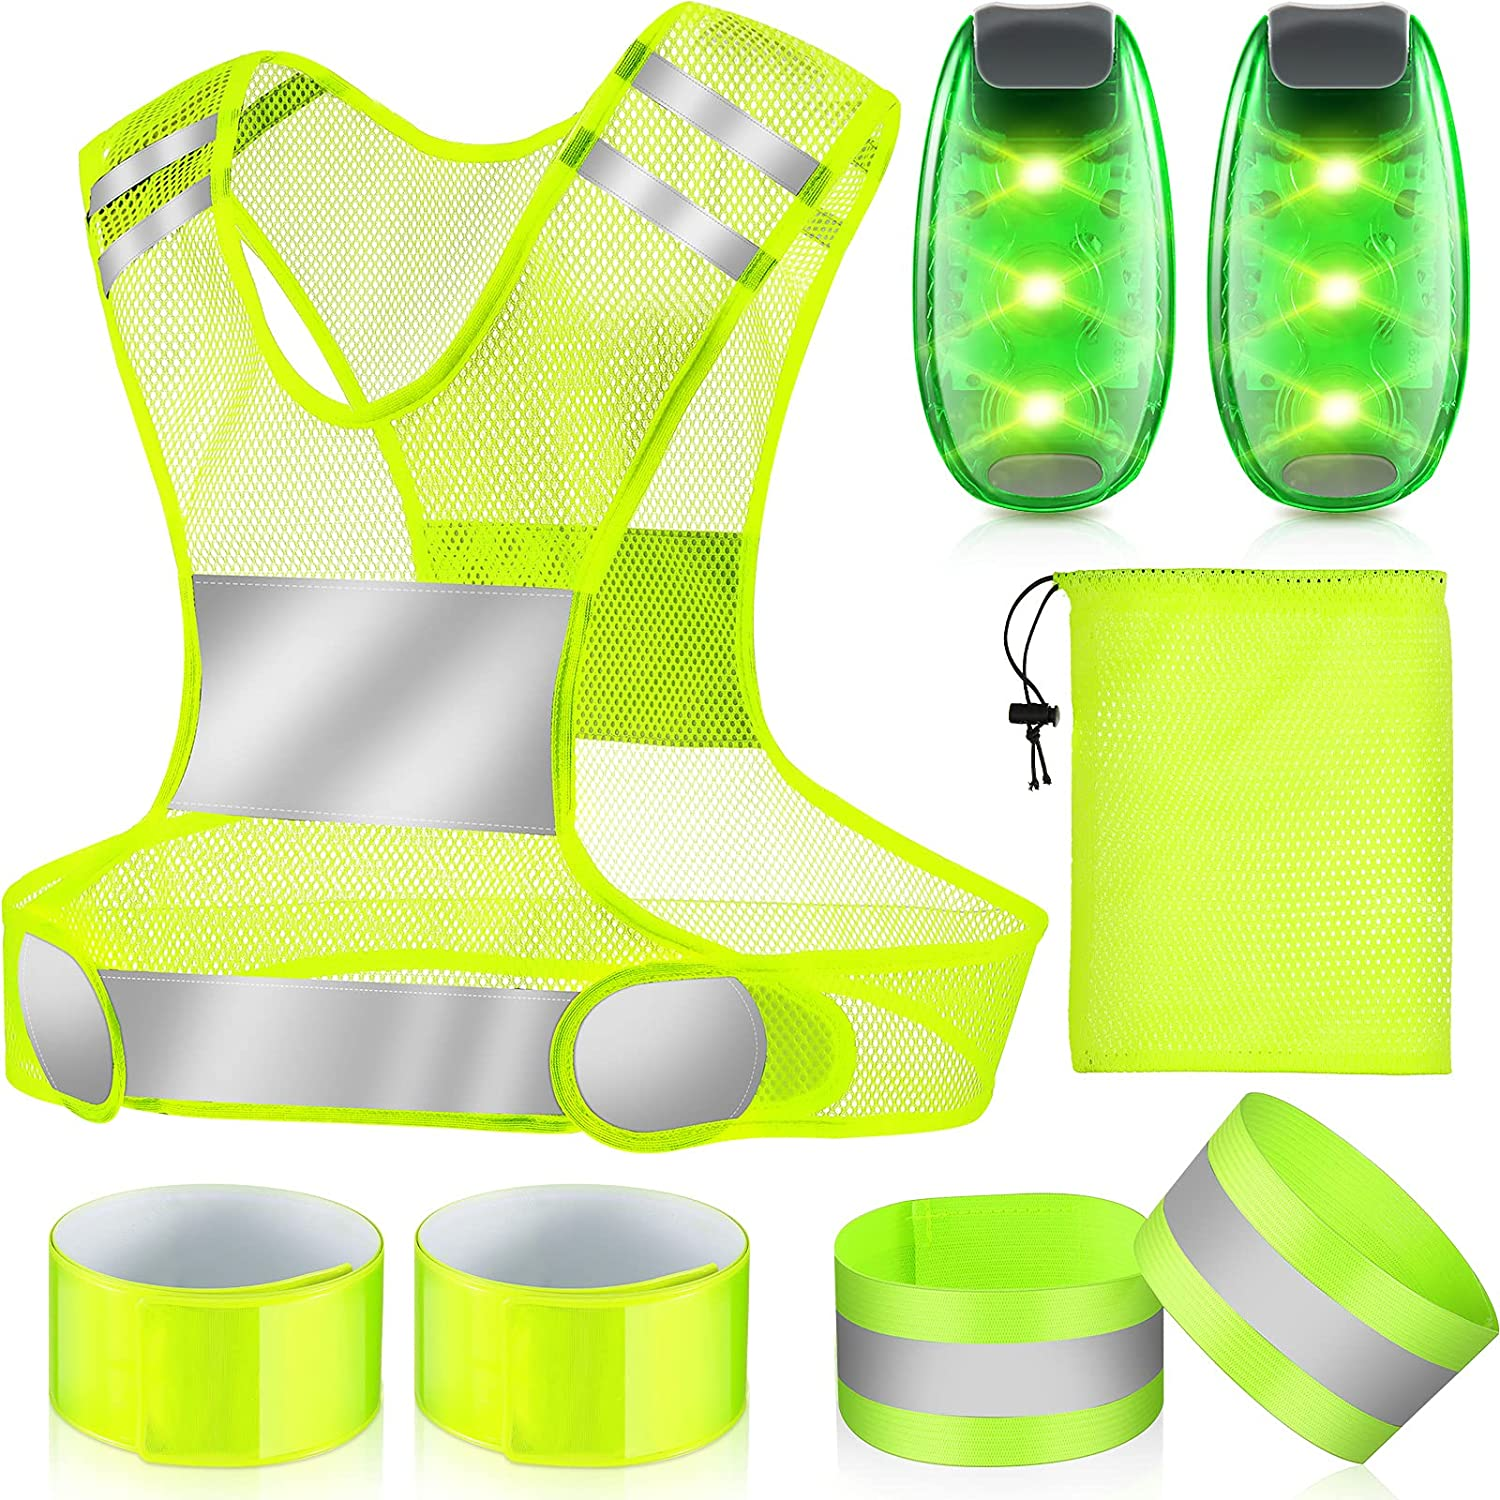 8 Max 73% OFF Pieces Reflective Running Max 46% OFF Gear LED Safety Lights Set 2